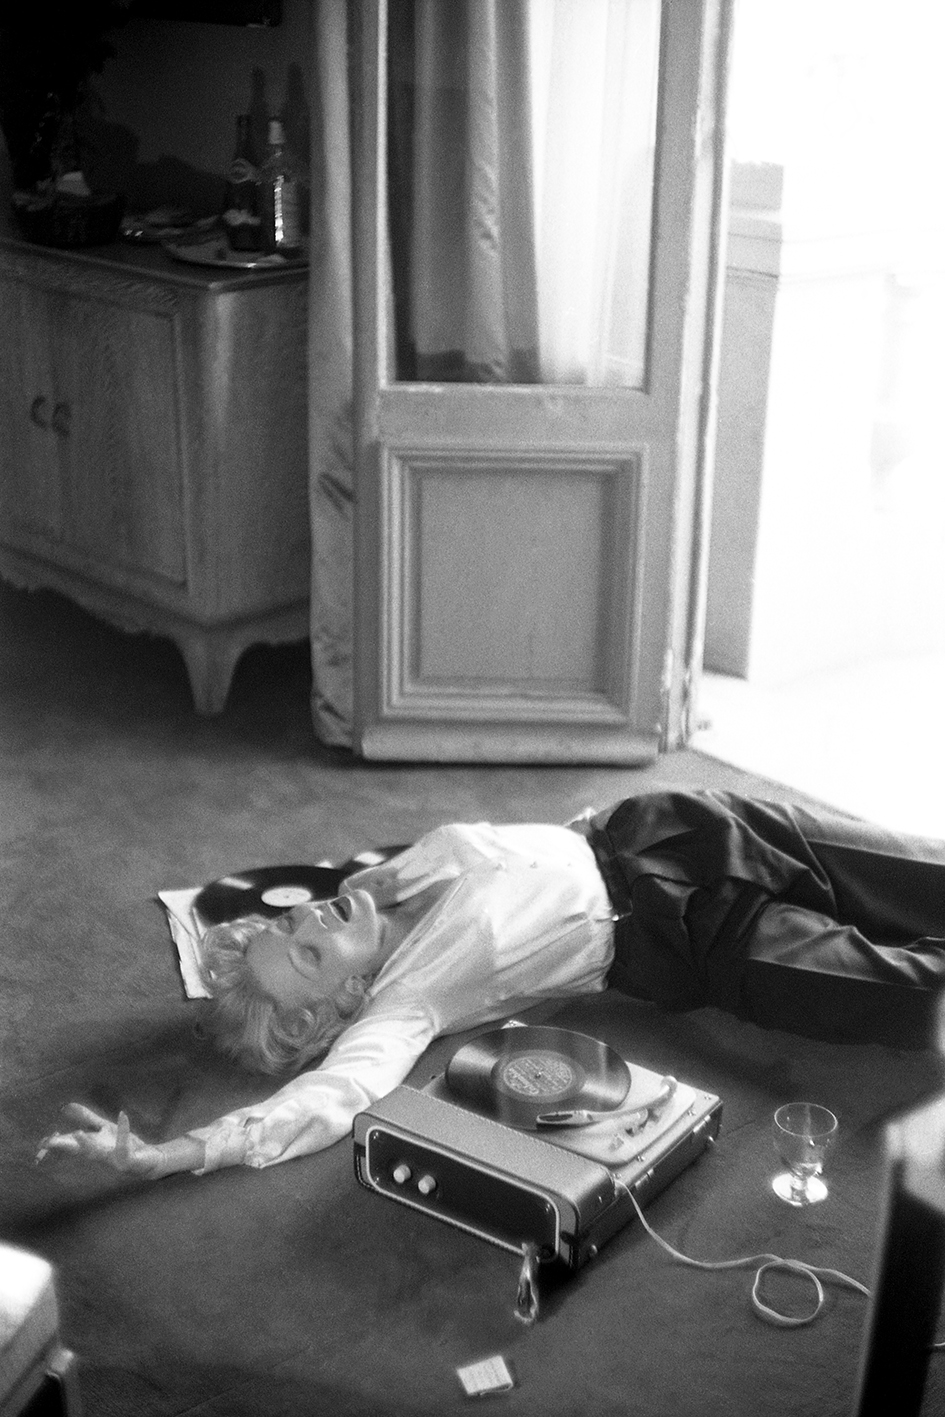 Marlène Dietrich lying on the floor, L'hotel de Paris, Monte Carlo, 1956